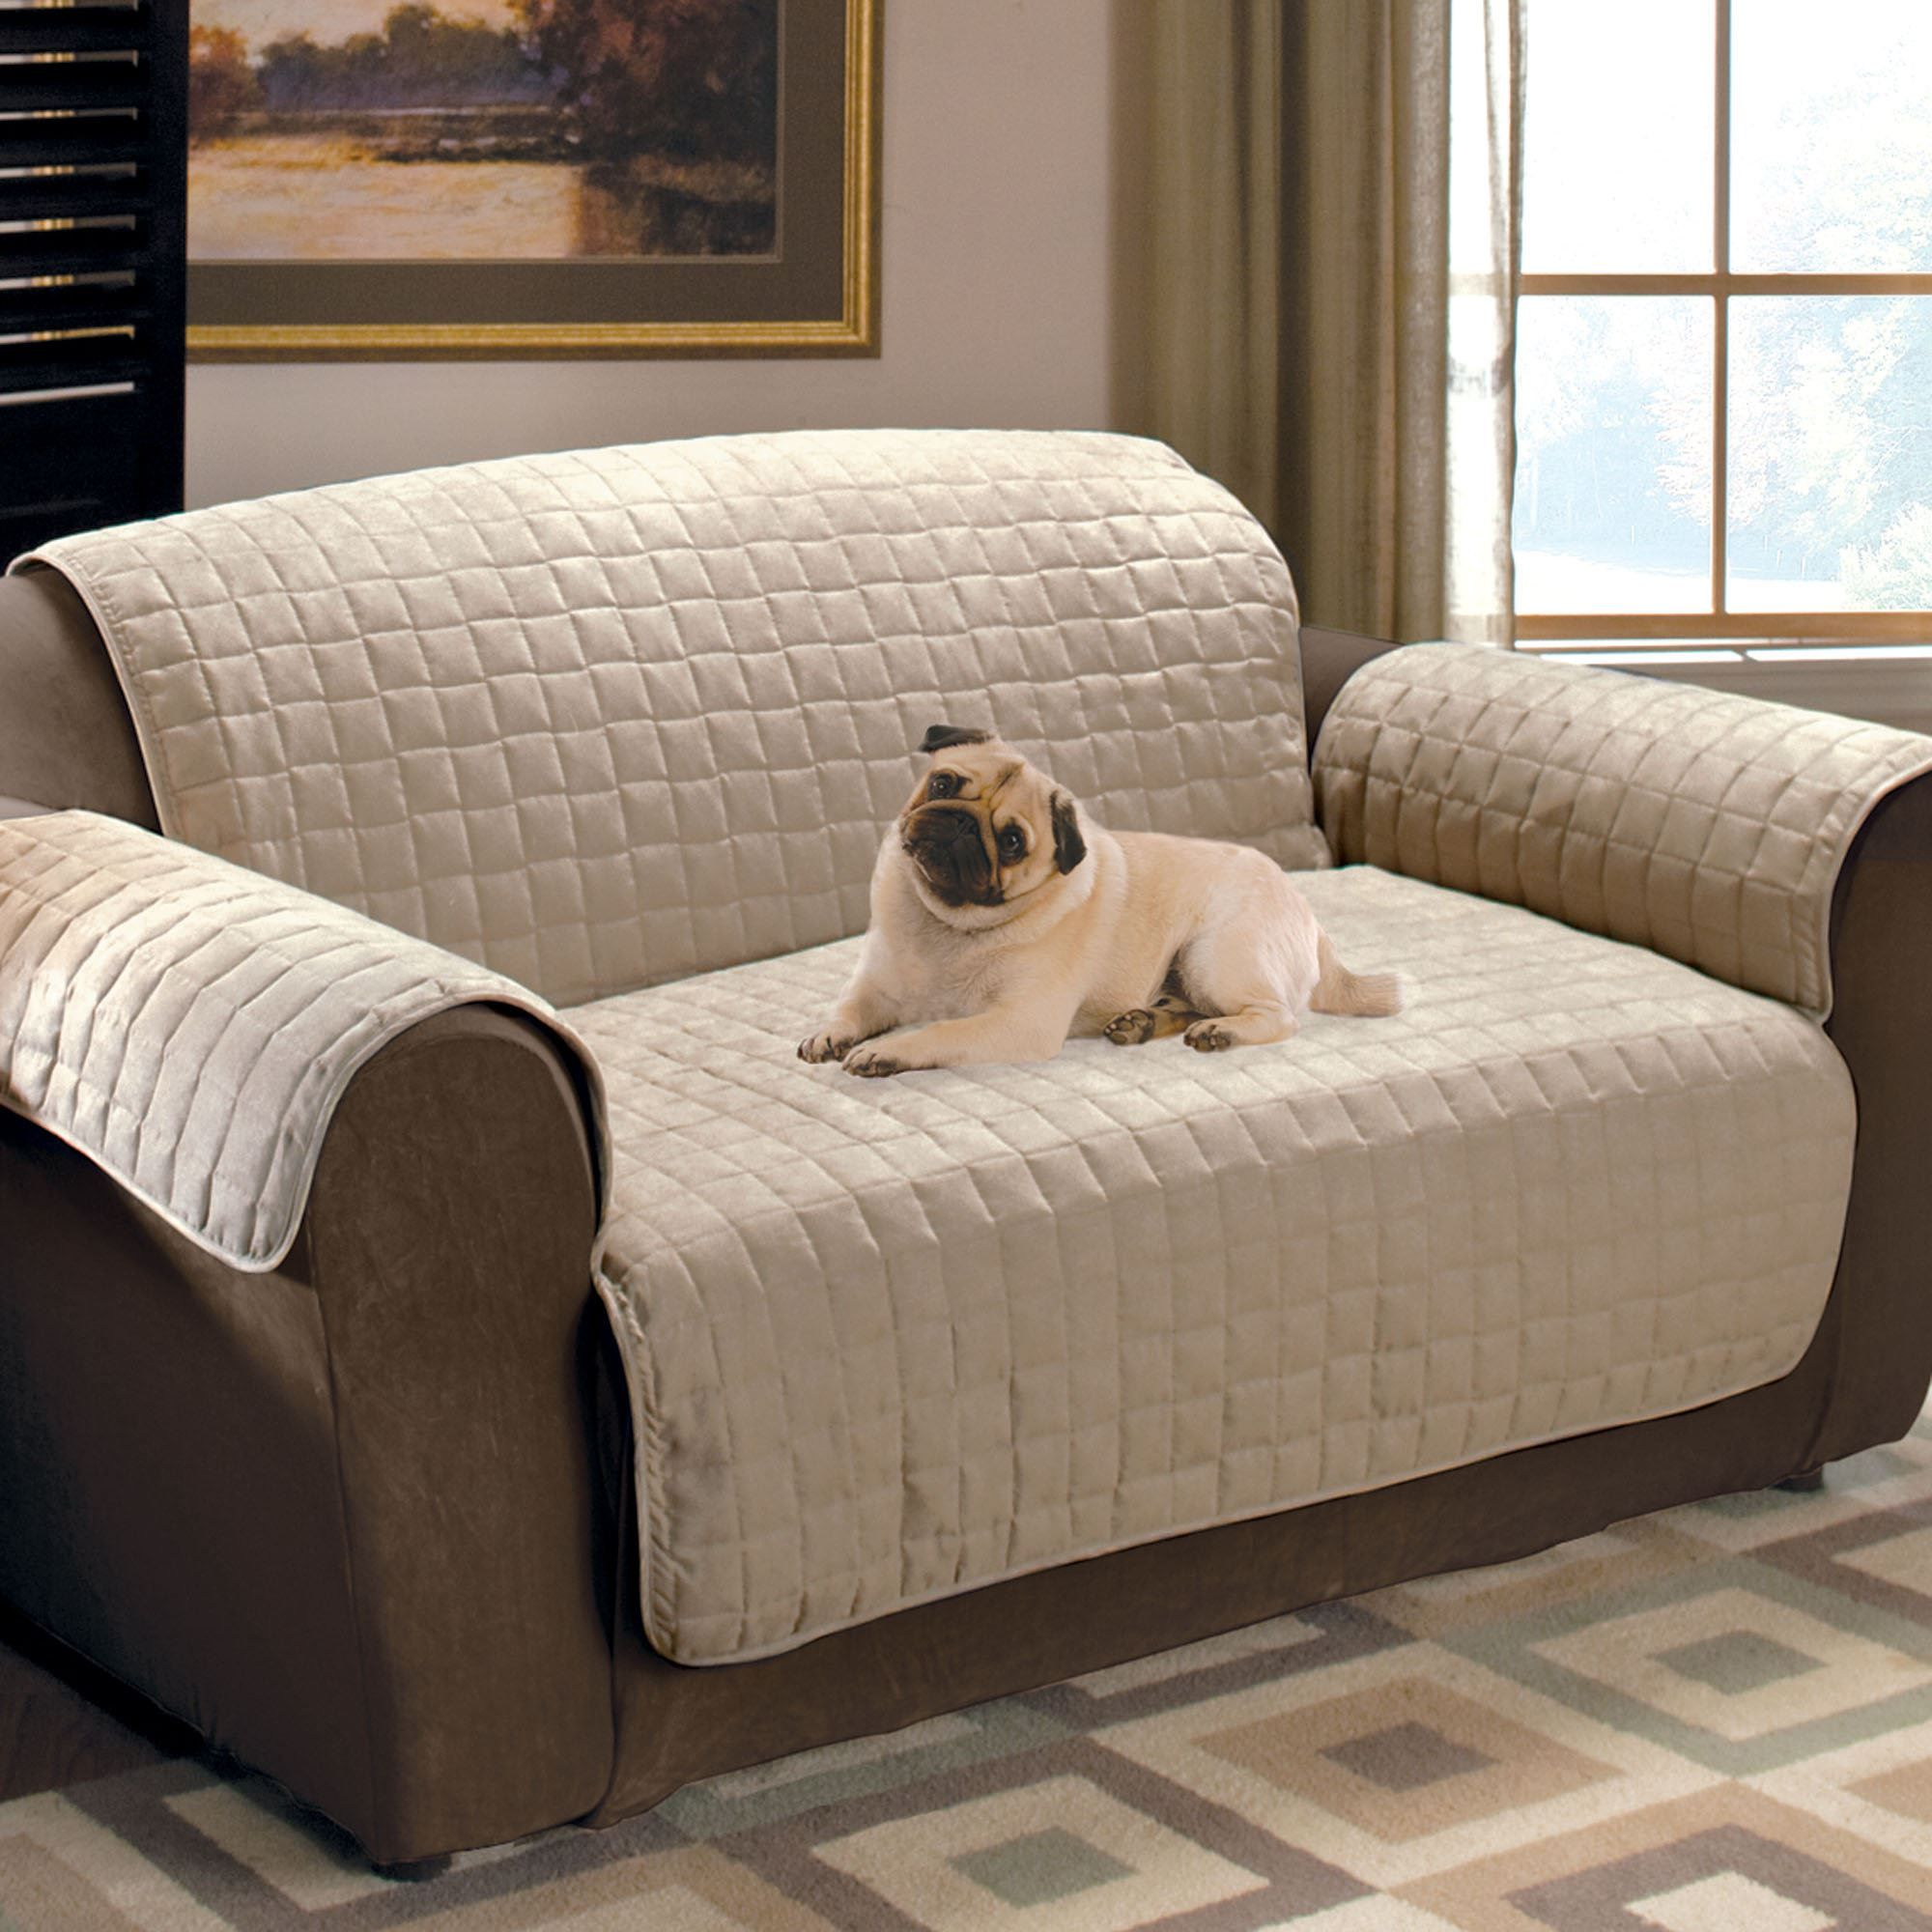 Benefits Of Using Sofa Cover Sofa Covers Pet Sofa Cover Couch